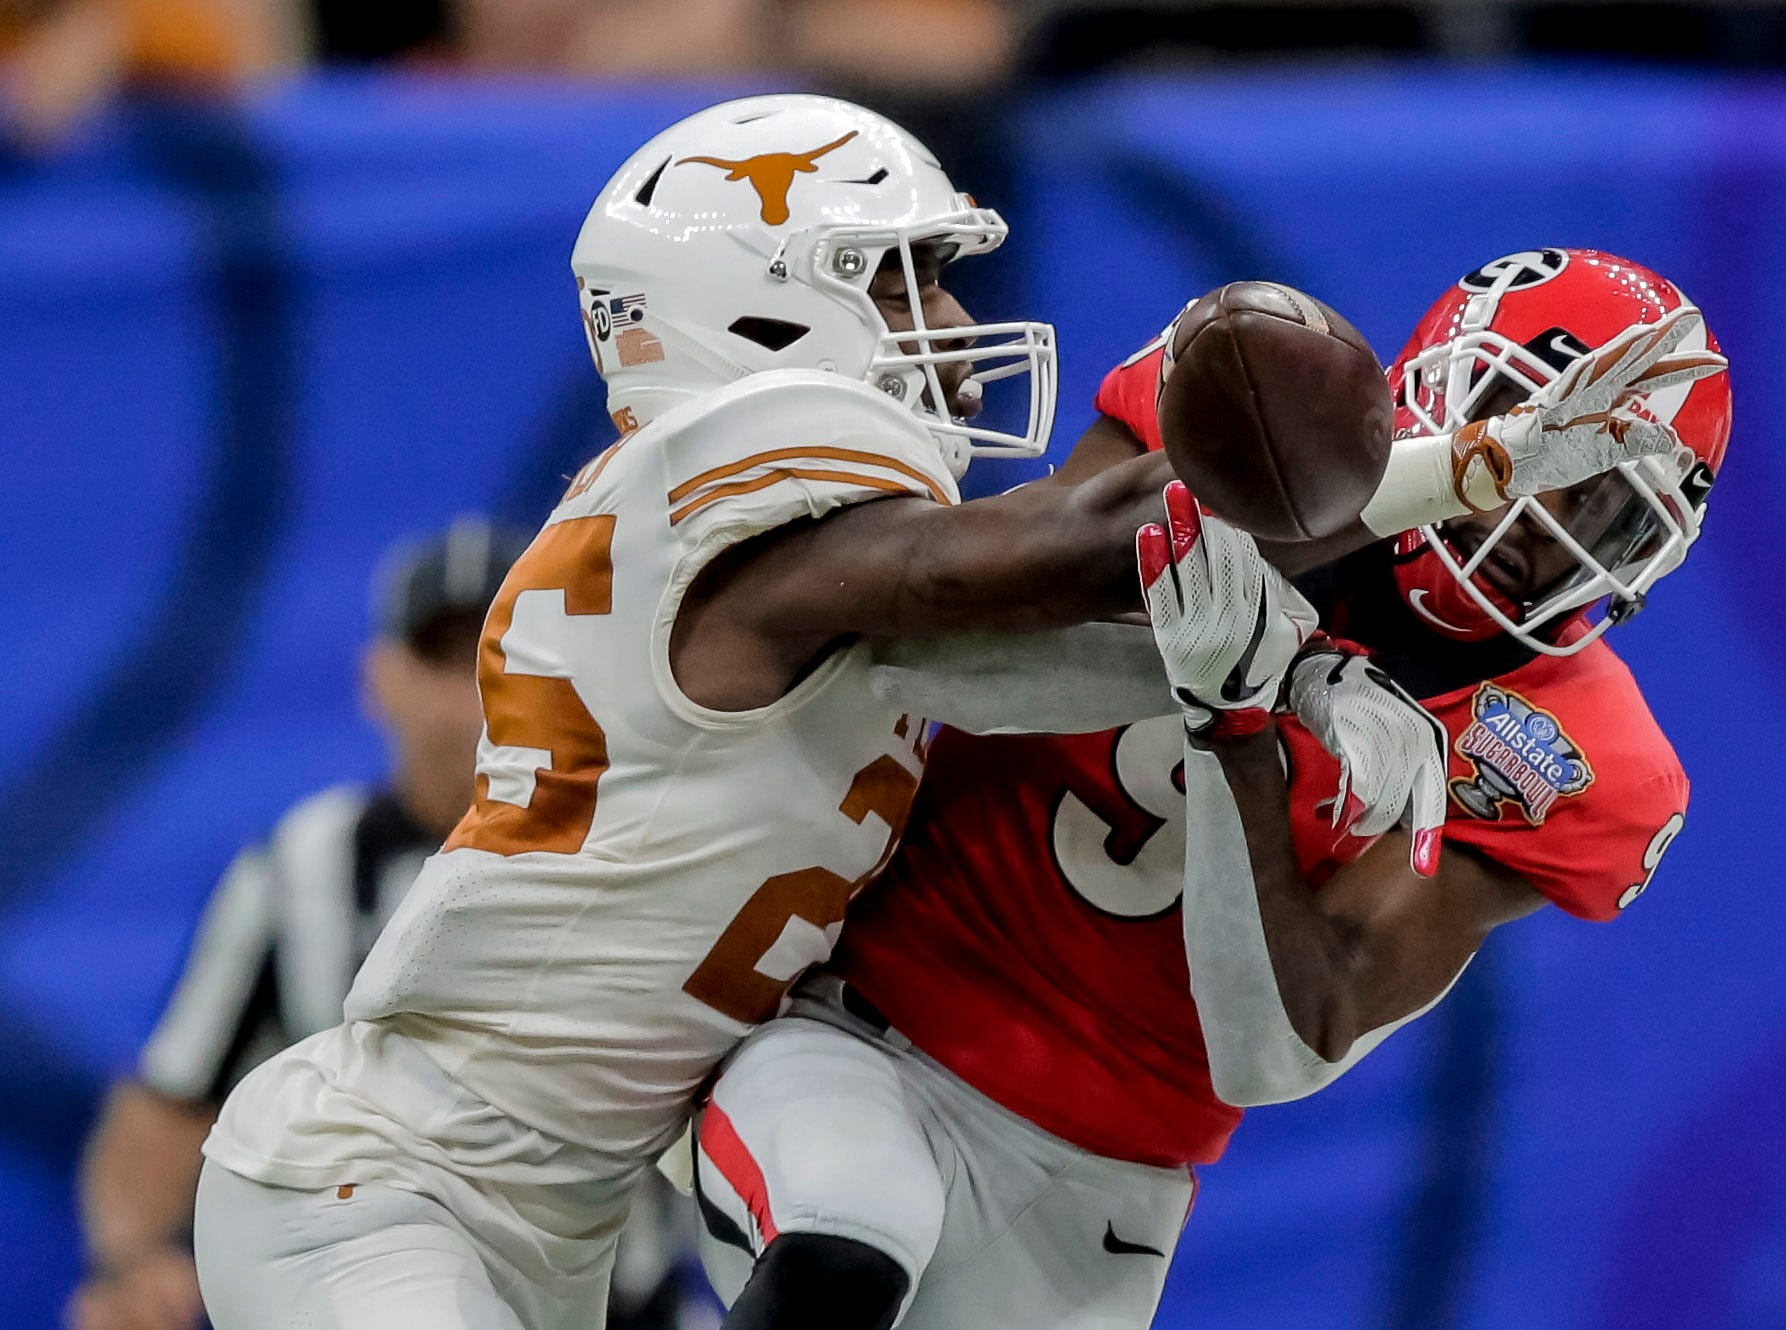 Texas Longhorns defensive back B.J. Foster (25) breaks up a pass to Georgia Bulldogs wide receiver Jeremiah Holloman (9) during the third quarter in the Sugar Bowl.